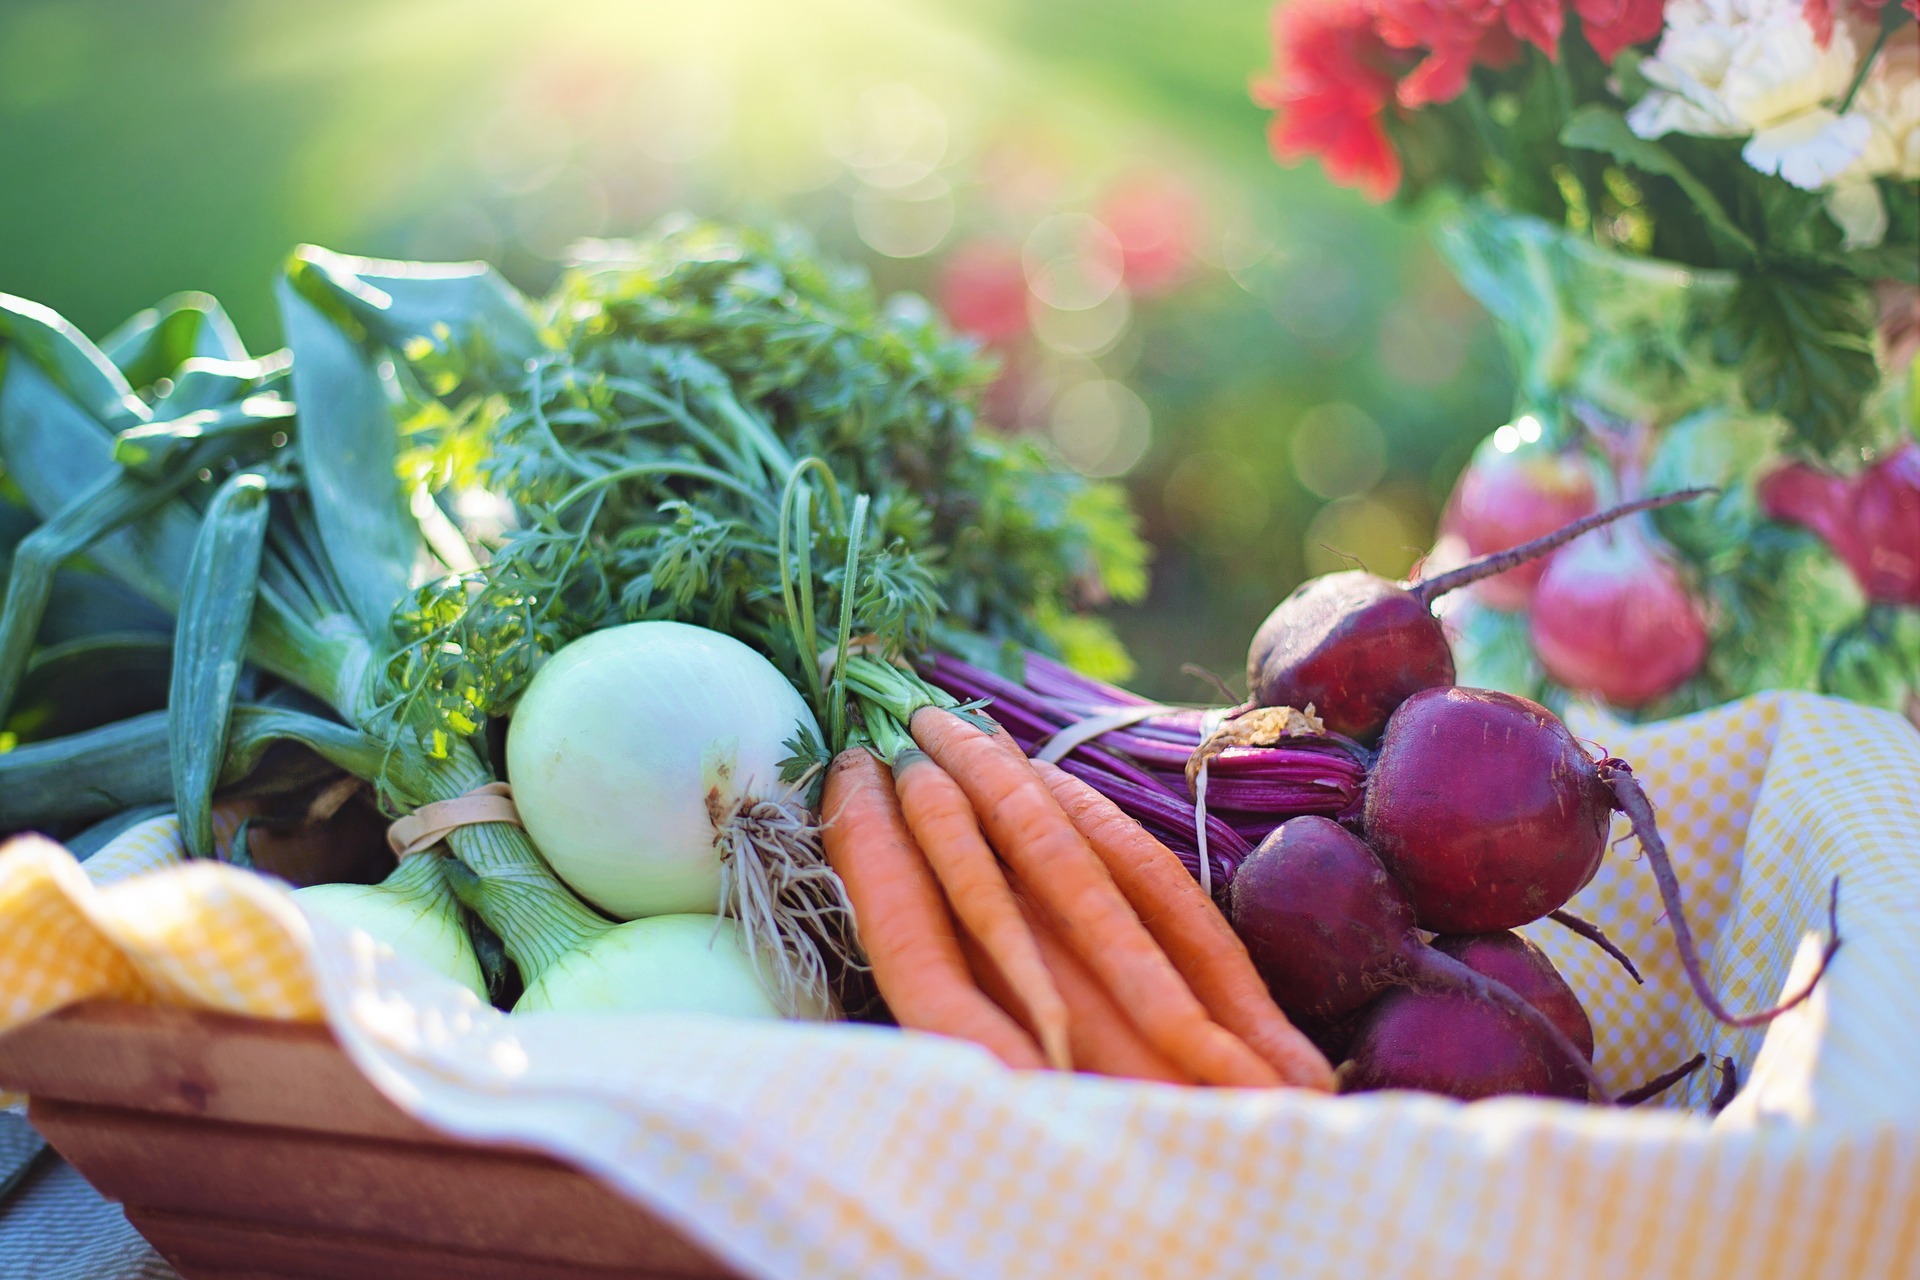 Food Waste with Ugly Produce